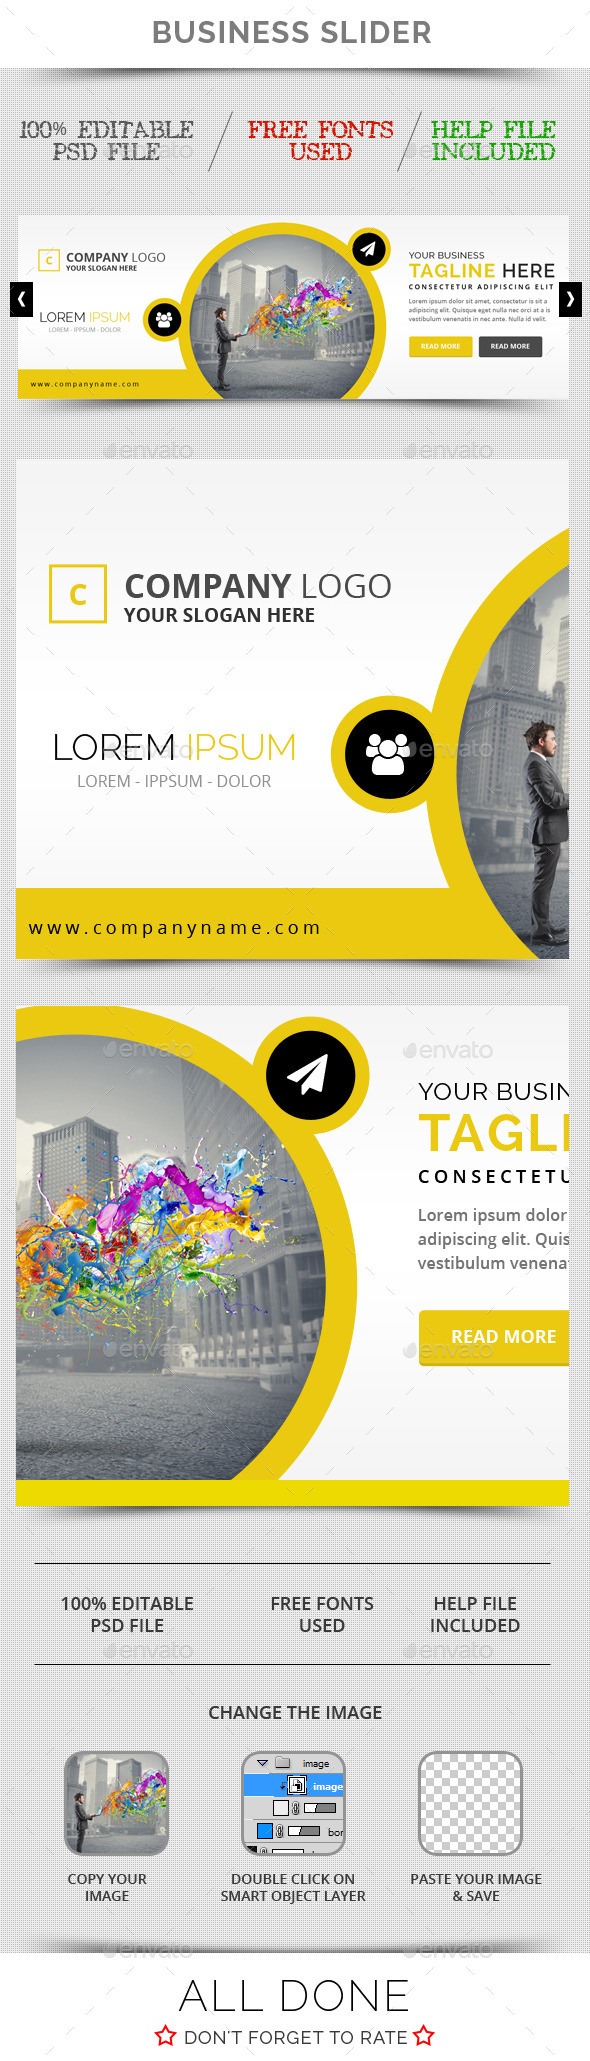 GraphicRiver Business Slider V14 11099169